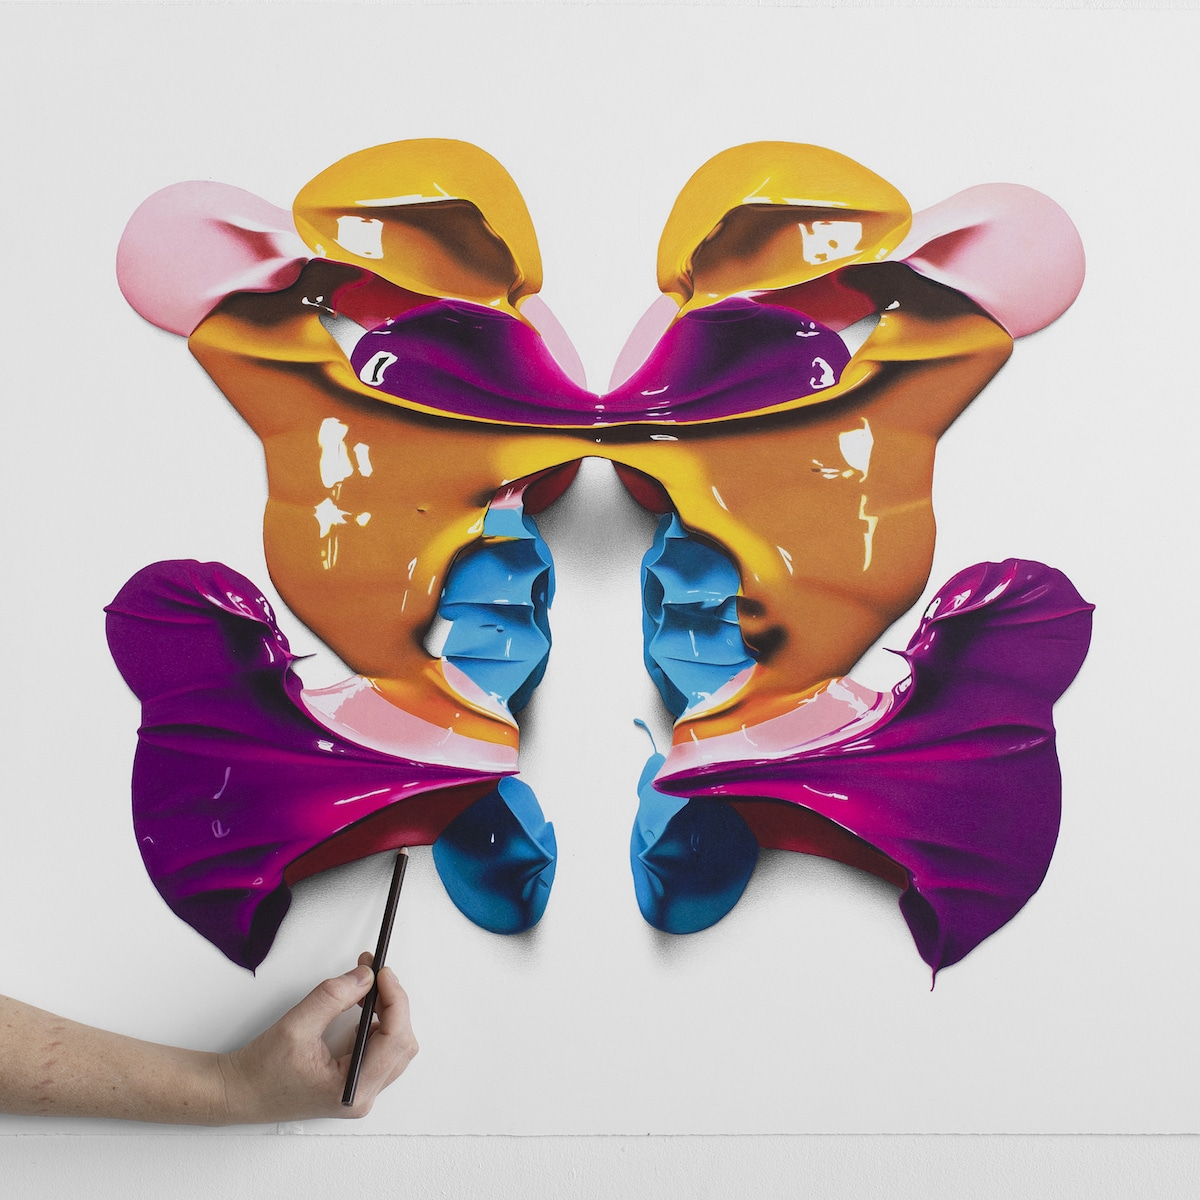 Colored Pencil Drawings Rorschach Blots by Cj Hendry